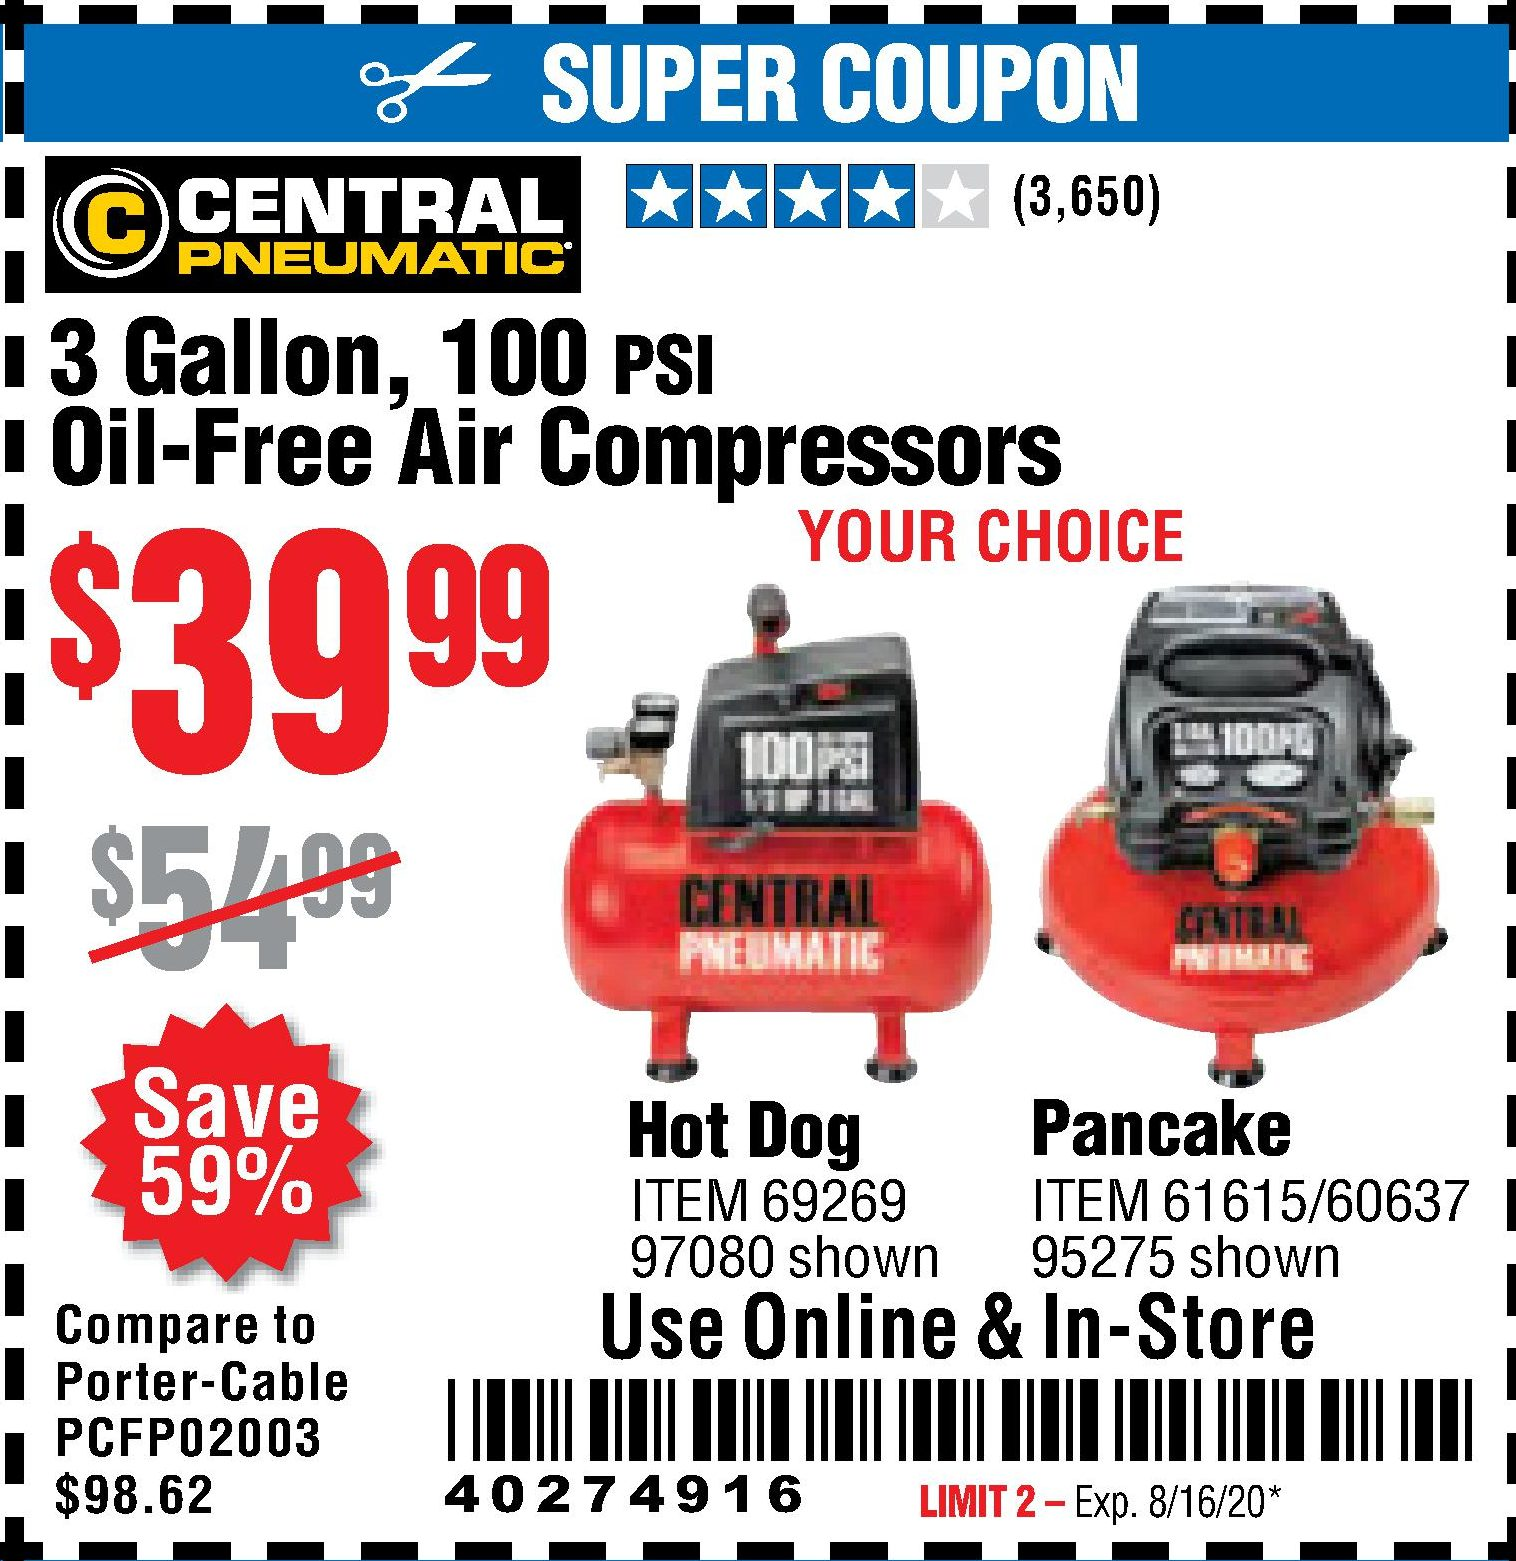 Harbor Freight 3 GALLON 100 PSI OILLESS HOT DOG STYLE AIR COMPRESSOR coupon